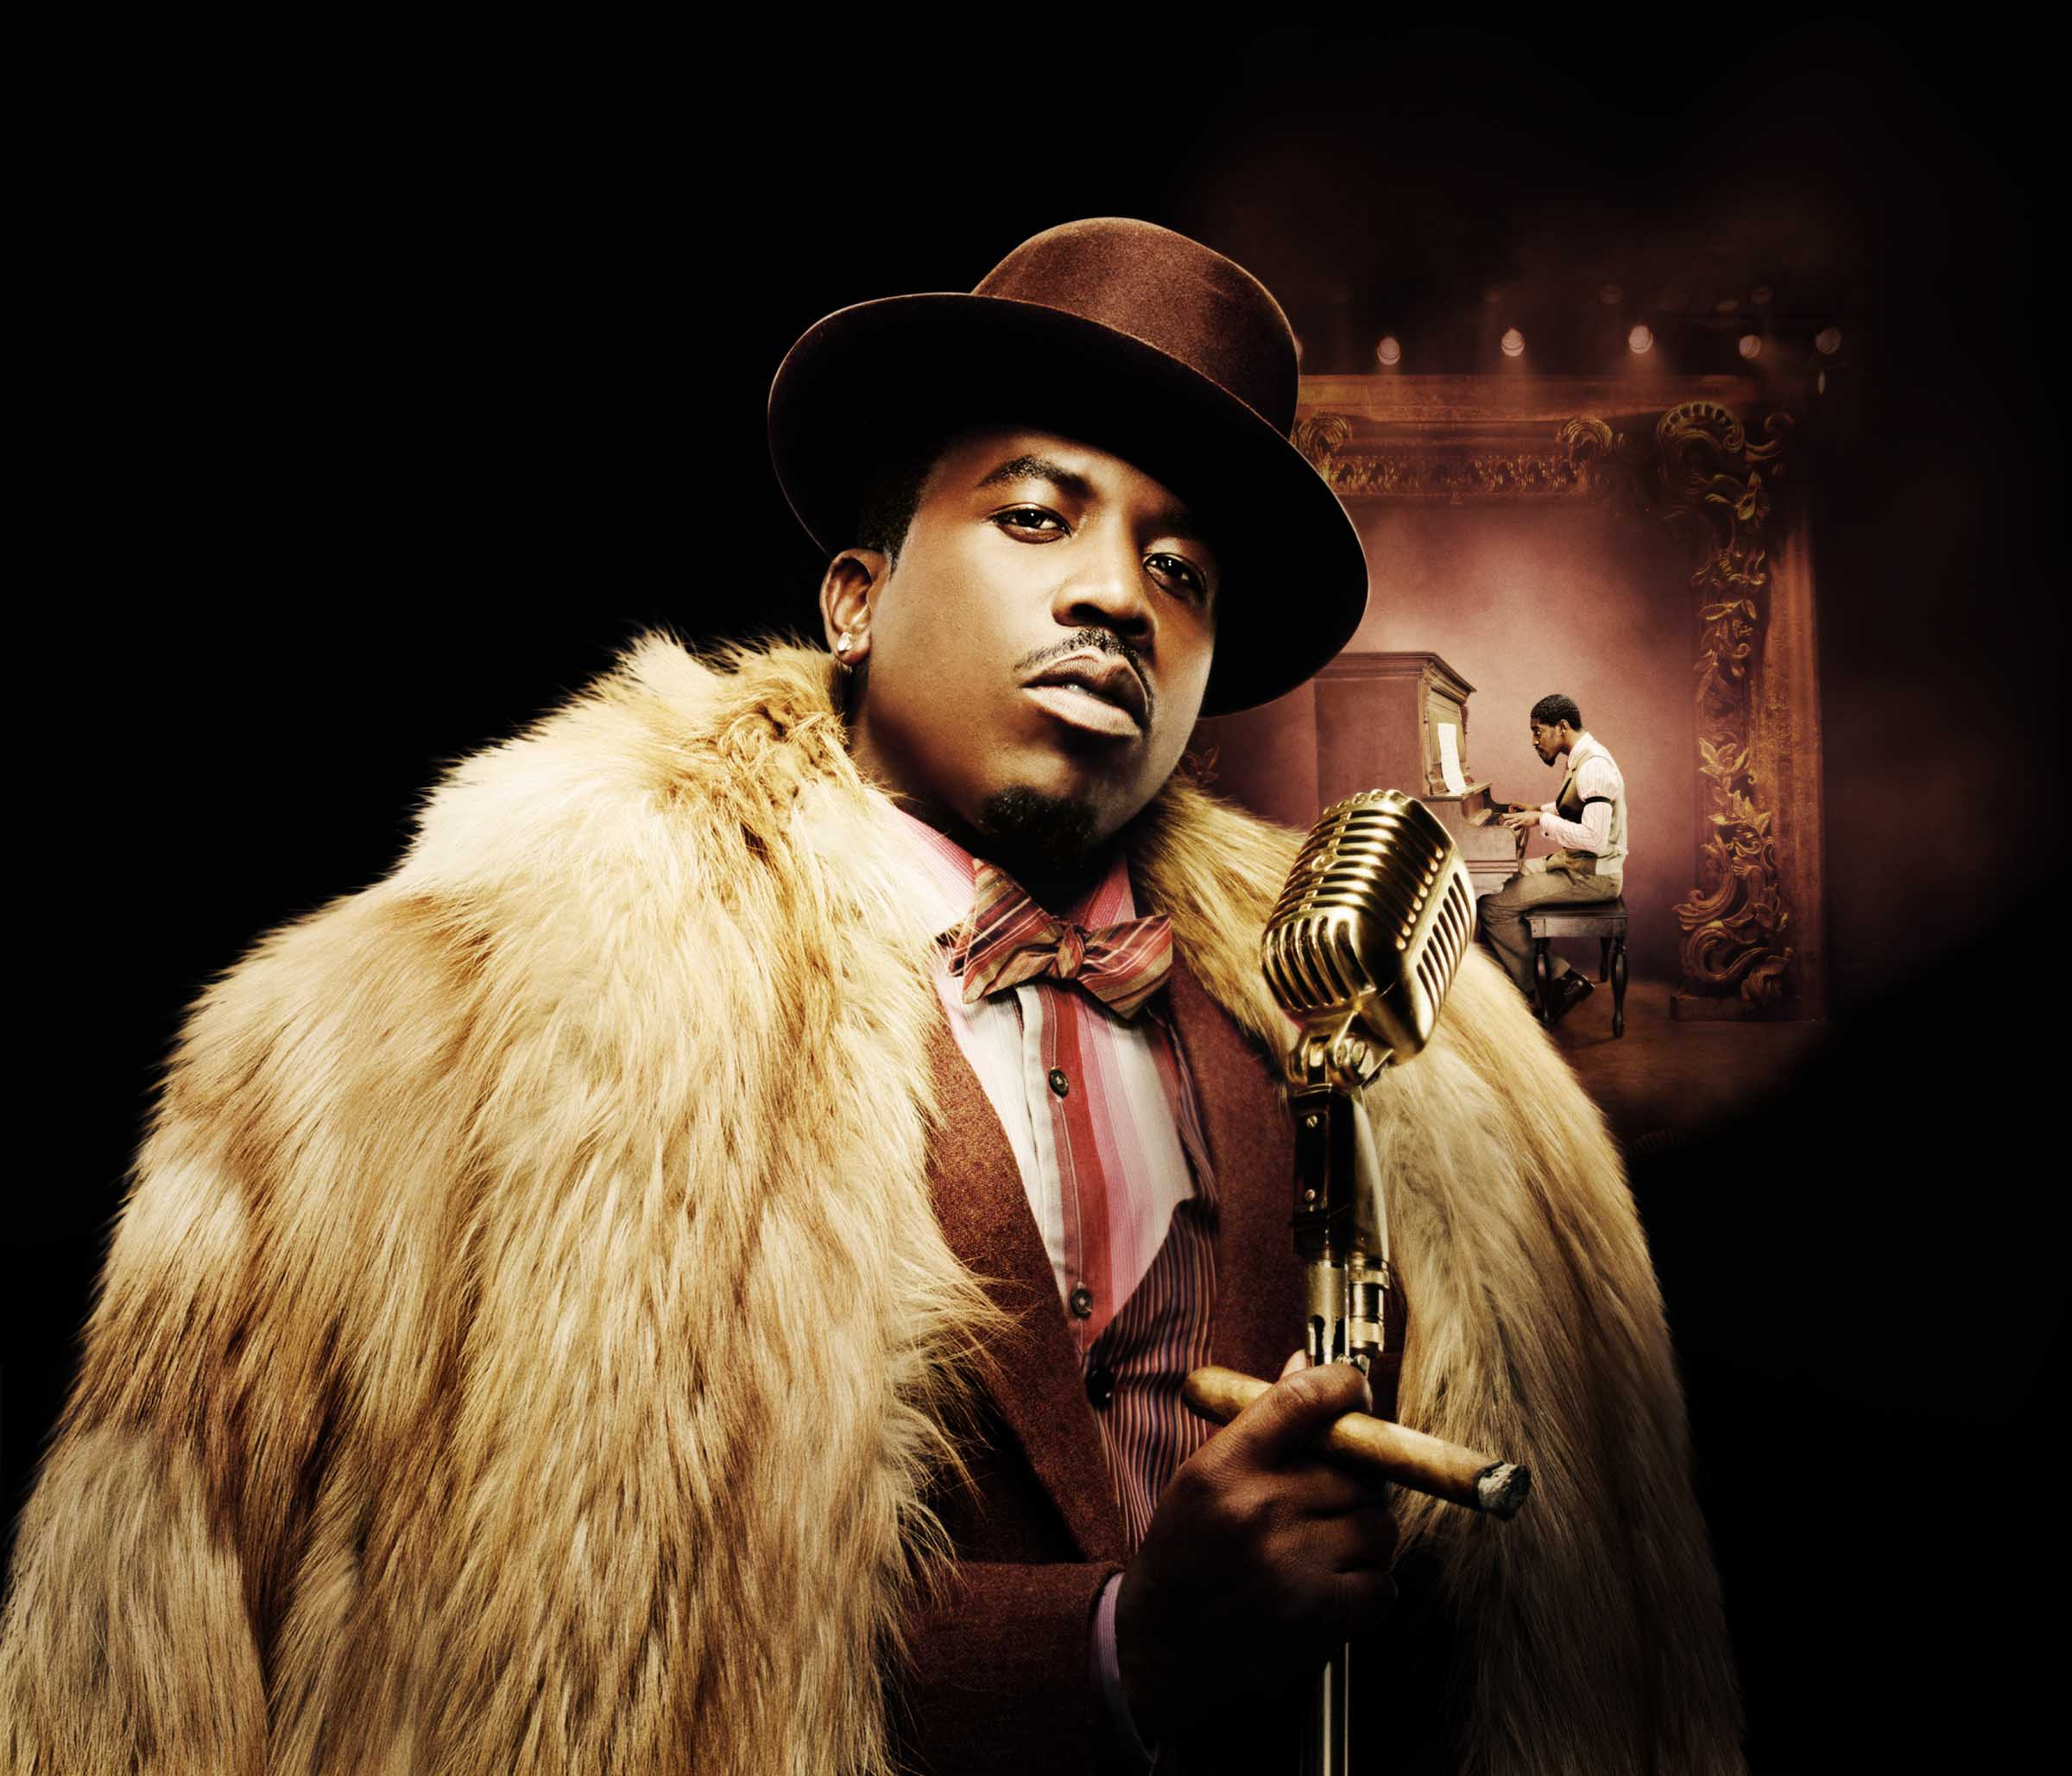 The rapper Big Boi, formerly of OutKast, will play LSE this year. (Image courtesy of trendland.com)